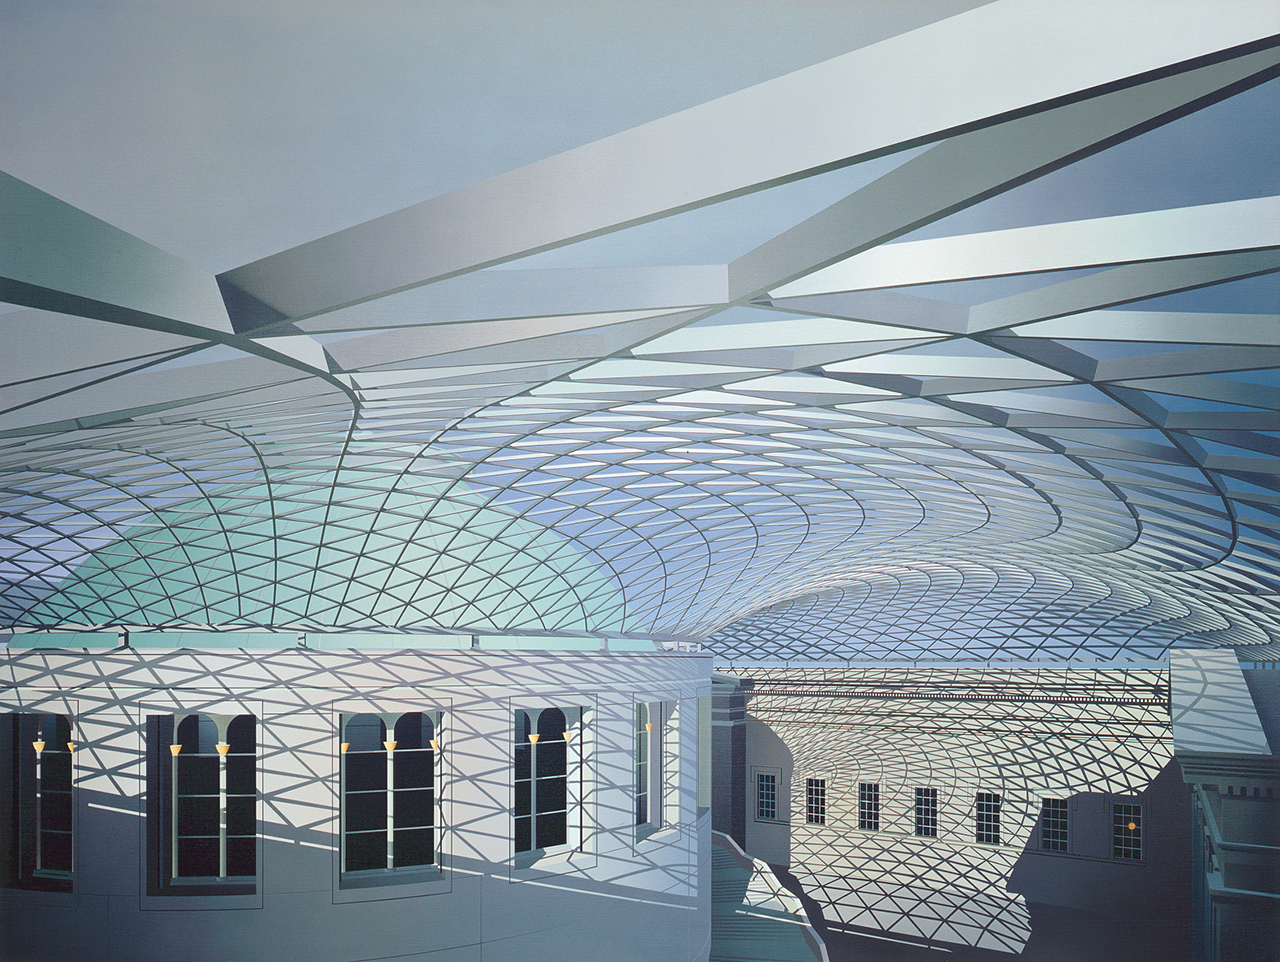 Ben Johnson British Museum Great Court 2002Acrylic on linen59x79in / 150x200cm.